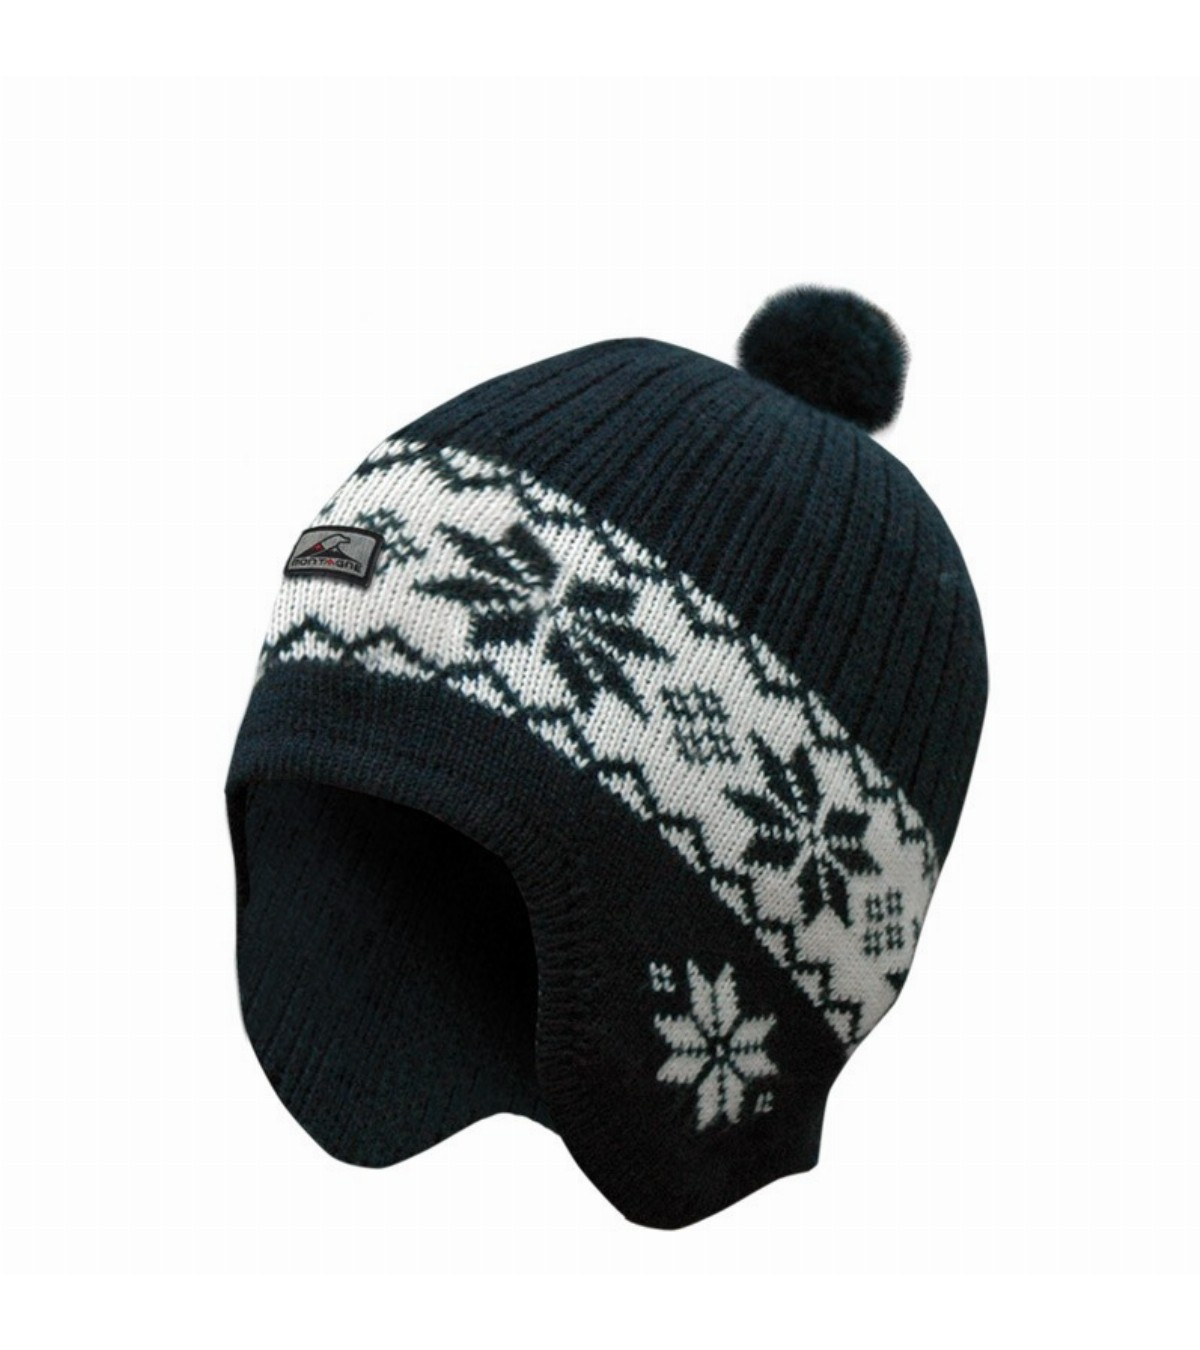 Gorro Snow Ñ New - Gorro niños Snow Ñ